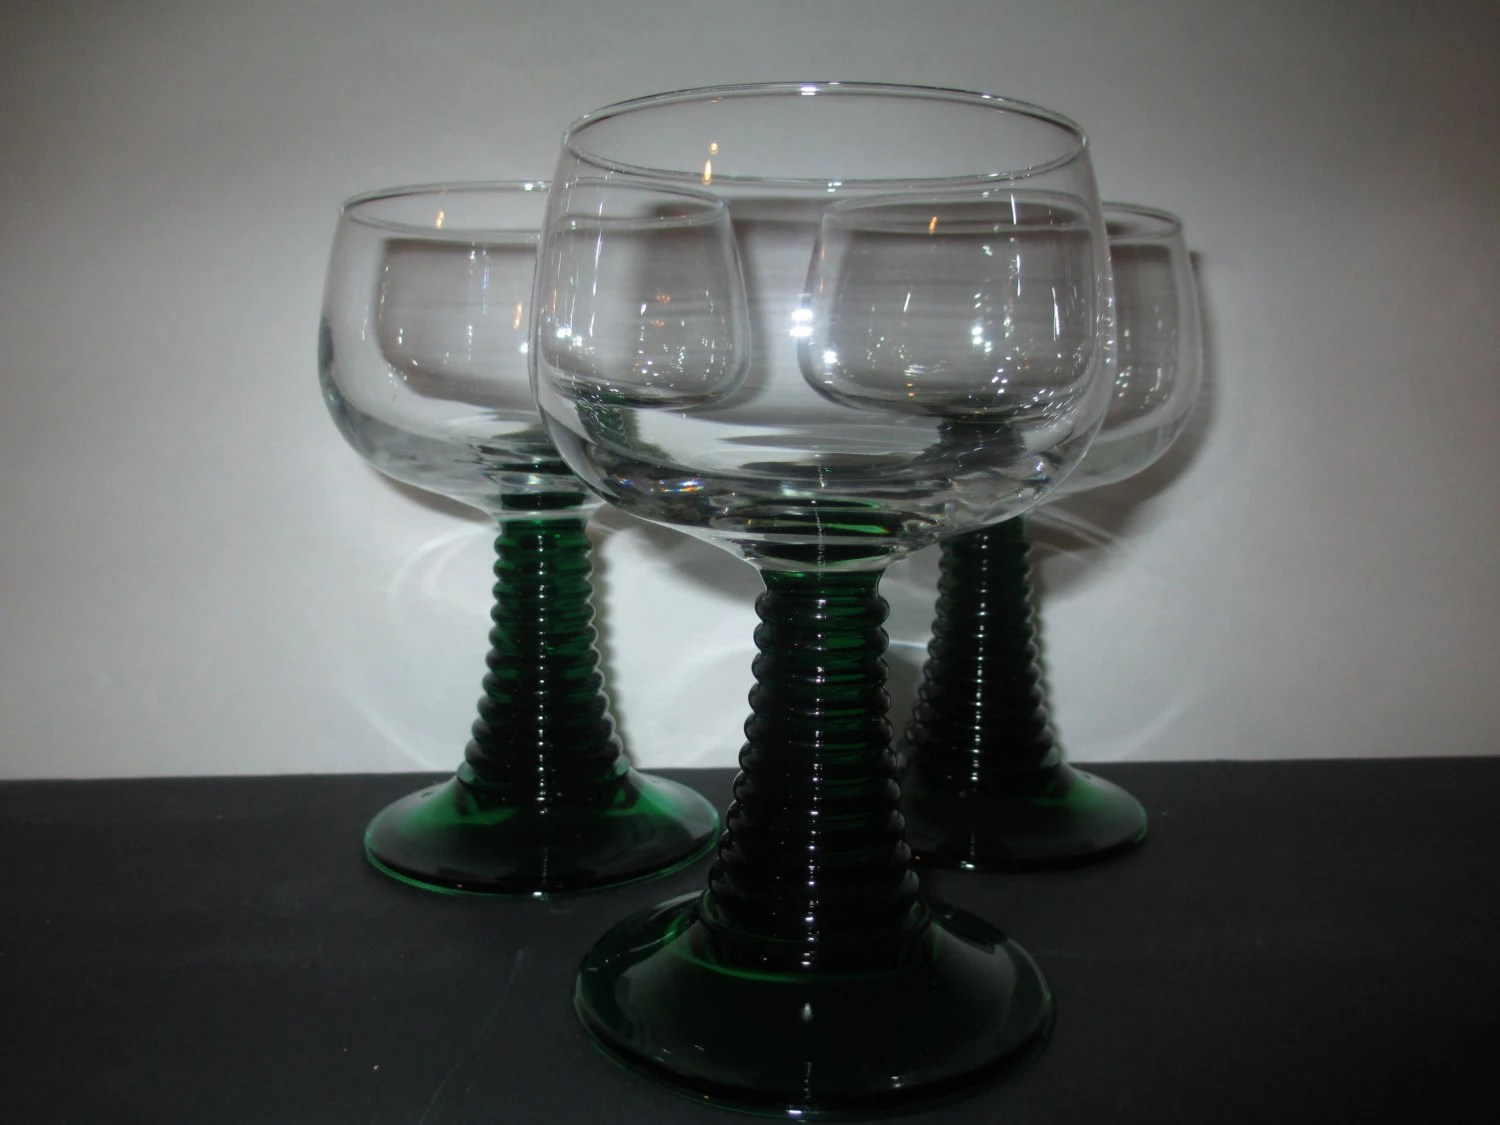 Luminarc Glass French Luminarc Glasses Green Coil Stem Green Coil Stem Glasses French Luminarc Glasses Vtg Luminarc Glasses